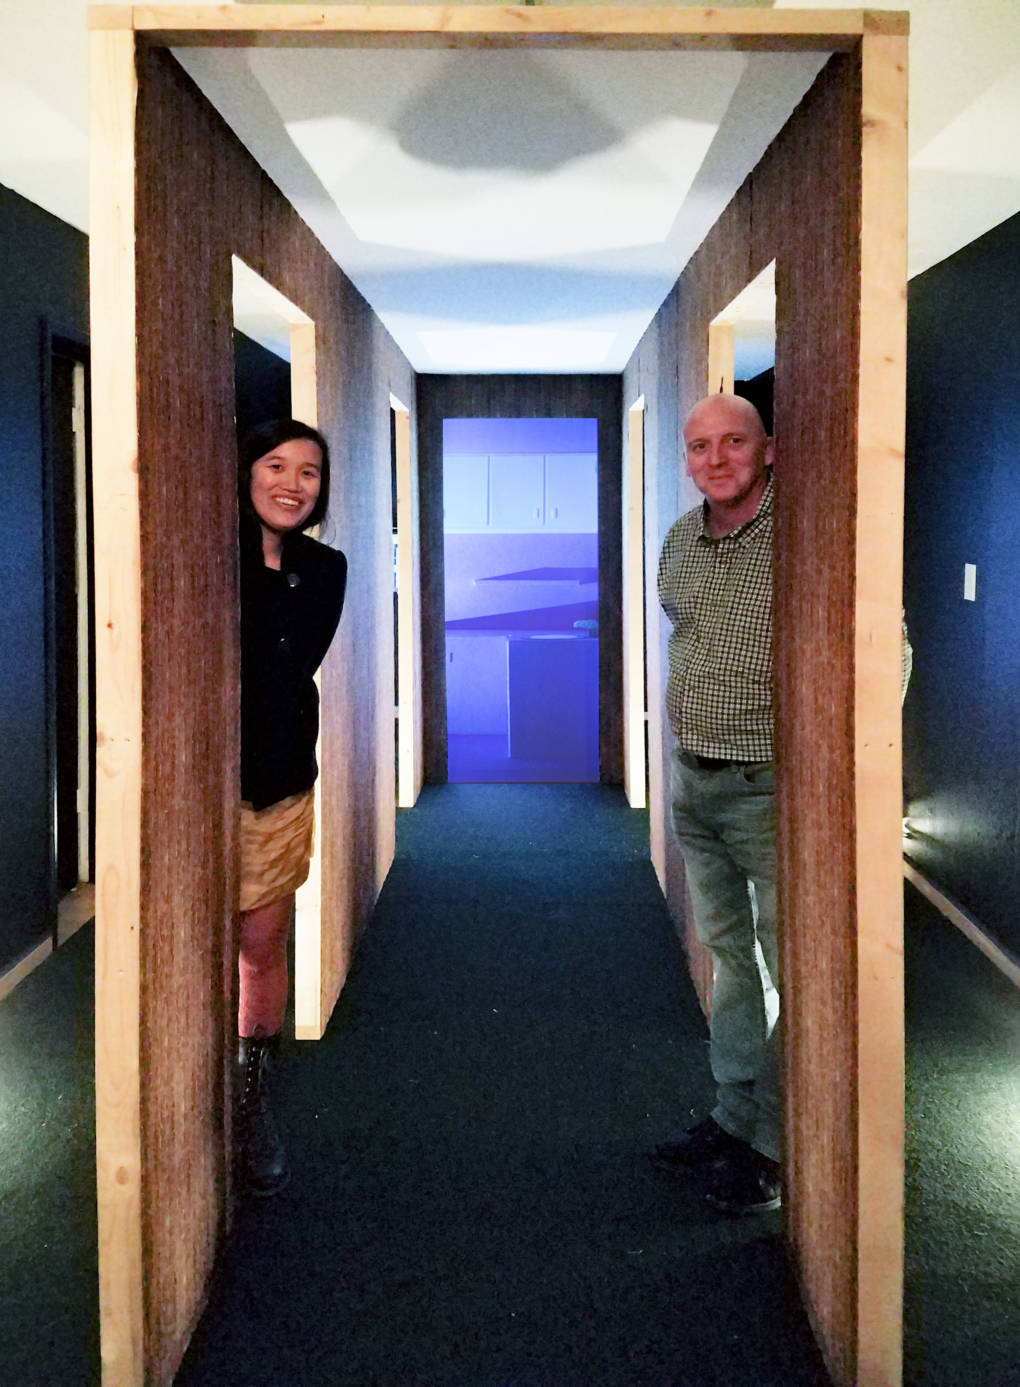 Amy M. Ho with collaborator Dennis Crookes standing inside installation for 'Spaces From Yesterday: The Hallway' at Oakland's Royal NoneSuch Gallery.